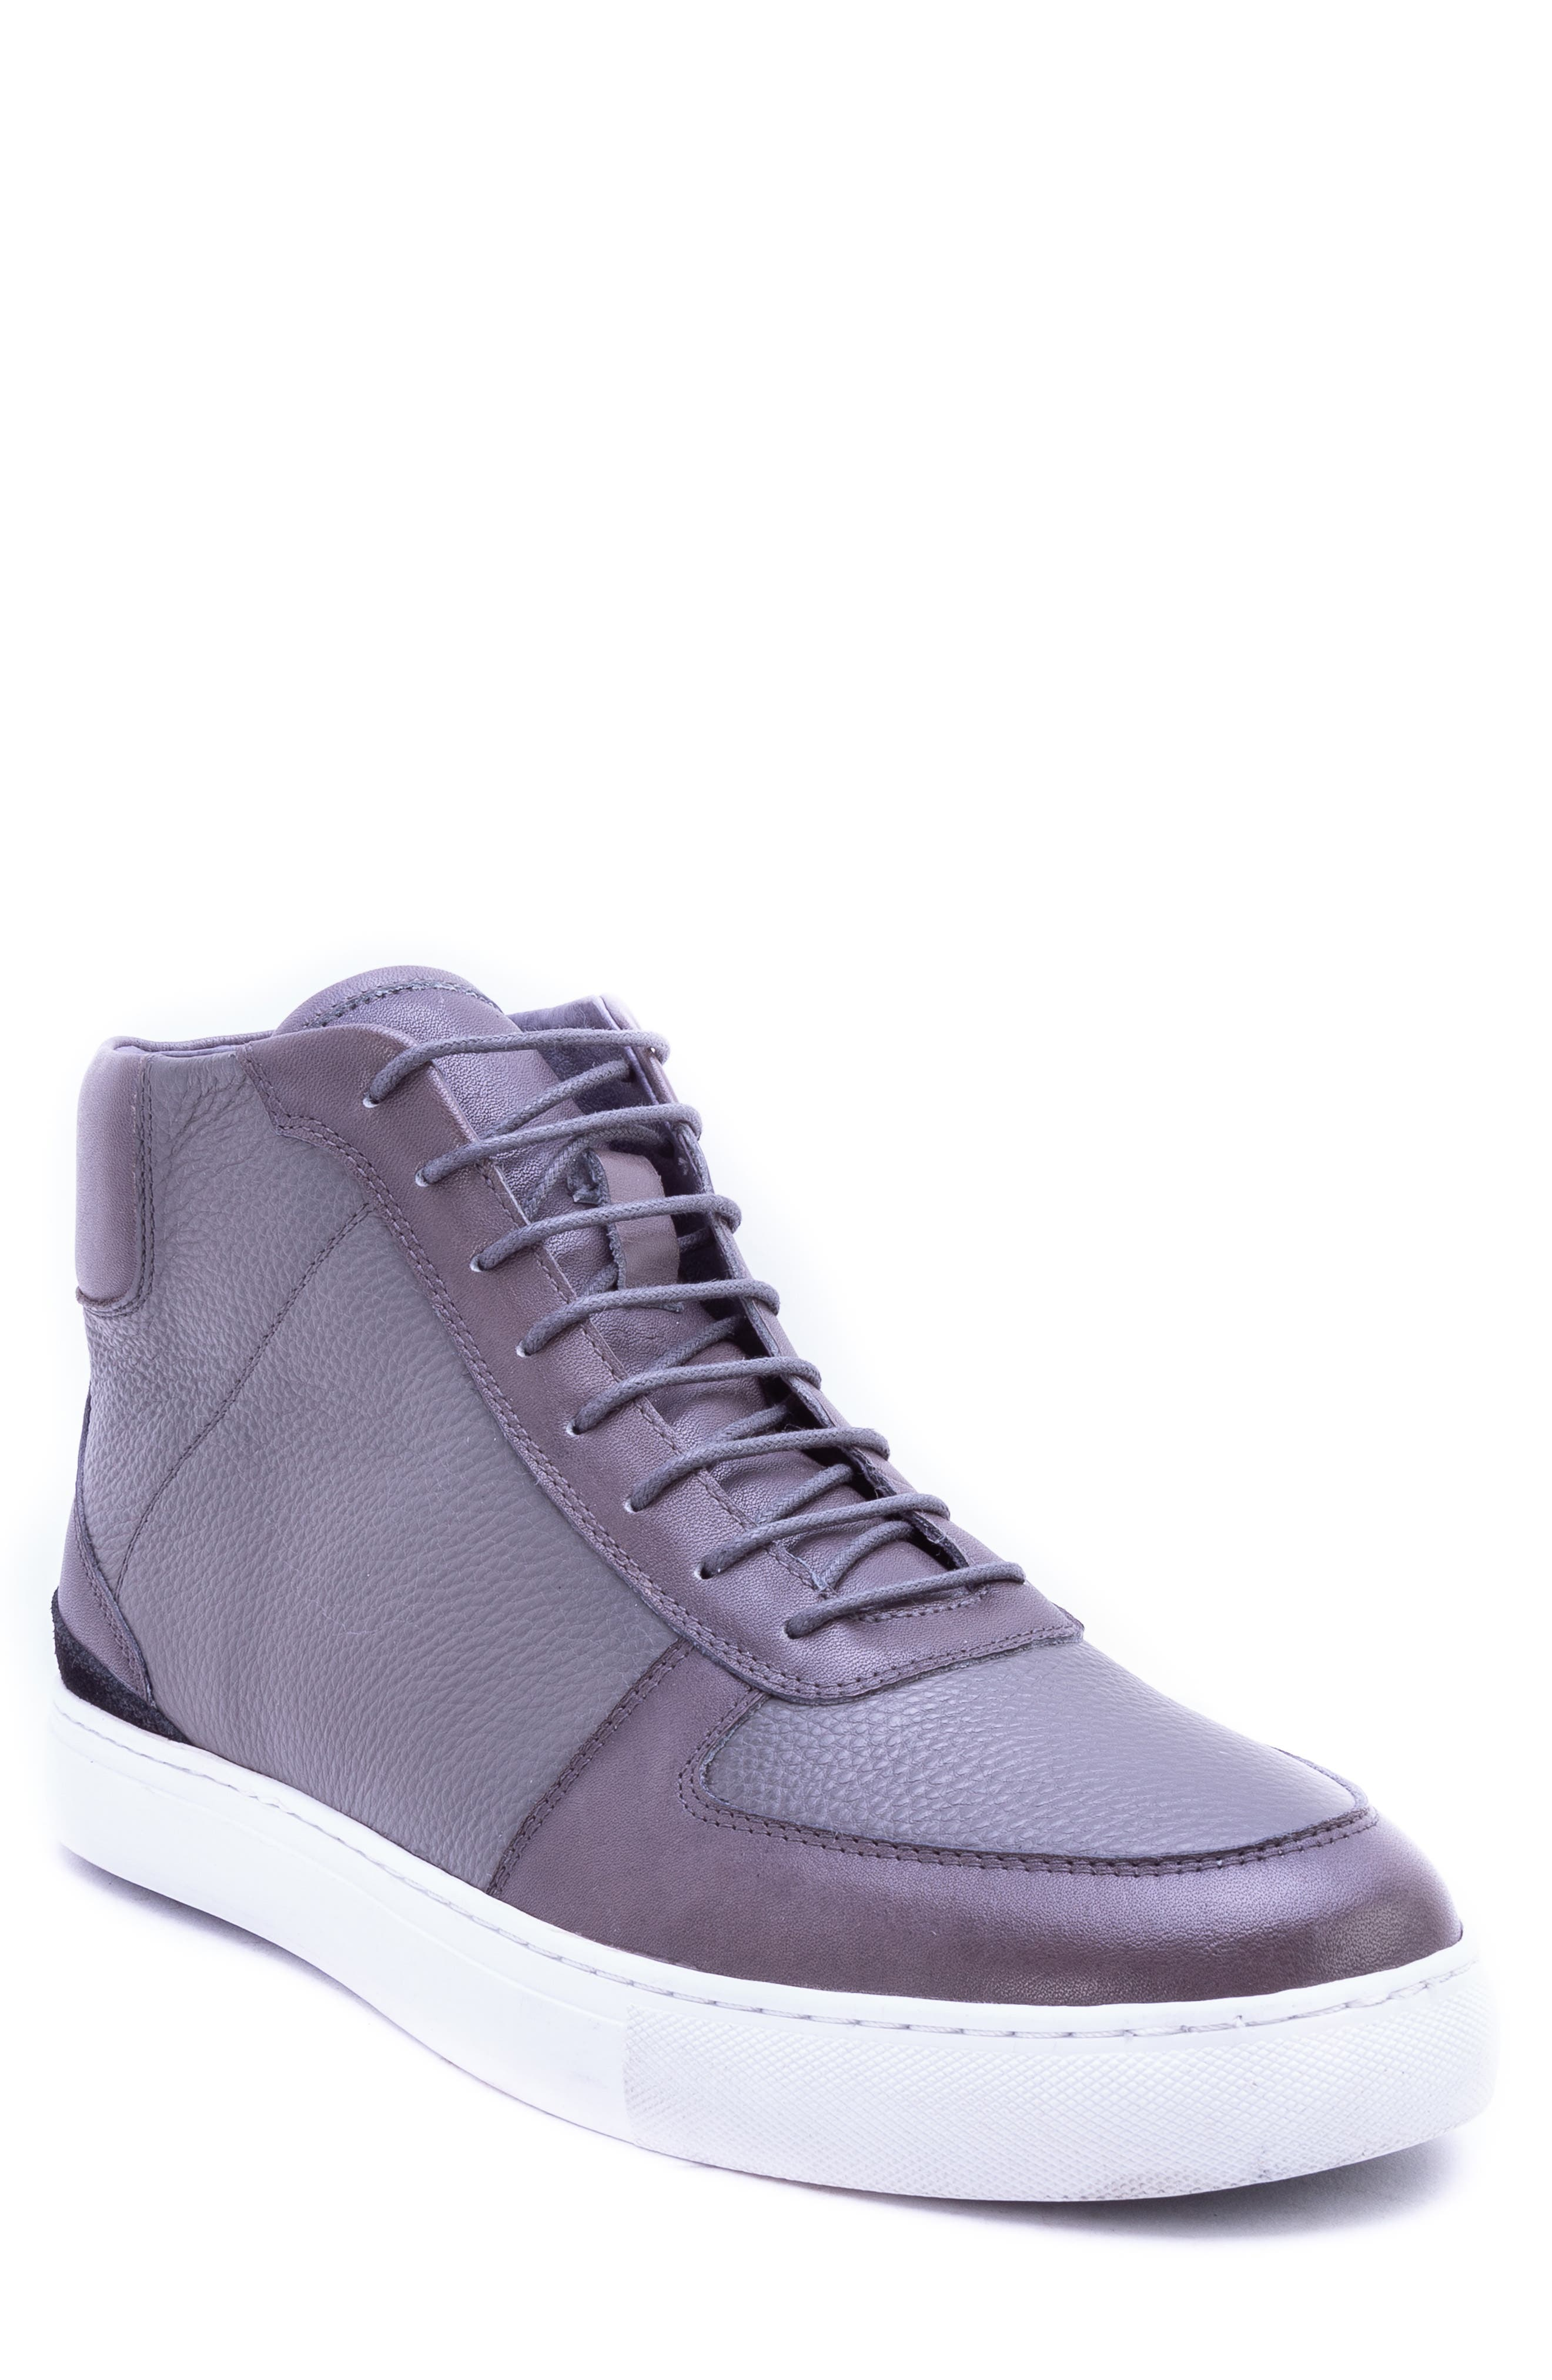 Tassel High Top Sneaker,                         Main,                         color, GREY LEATHER